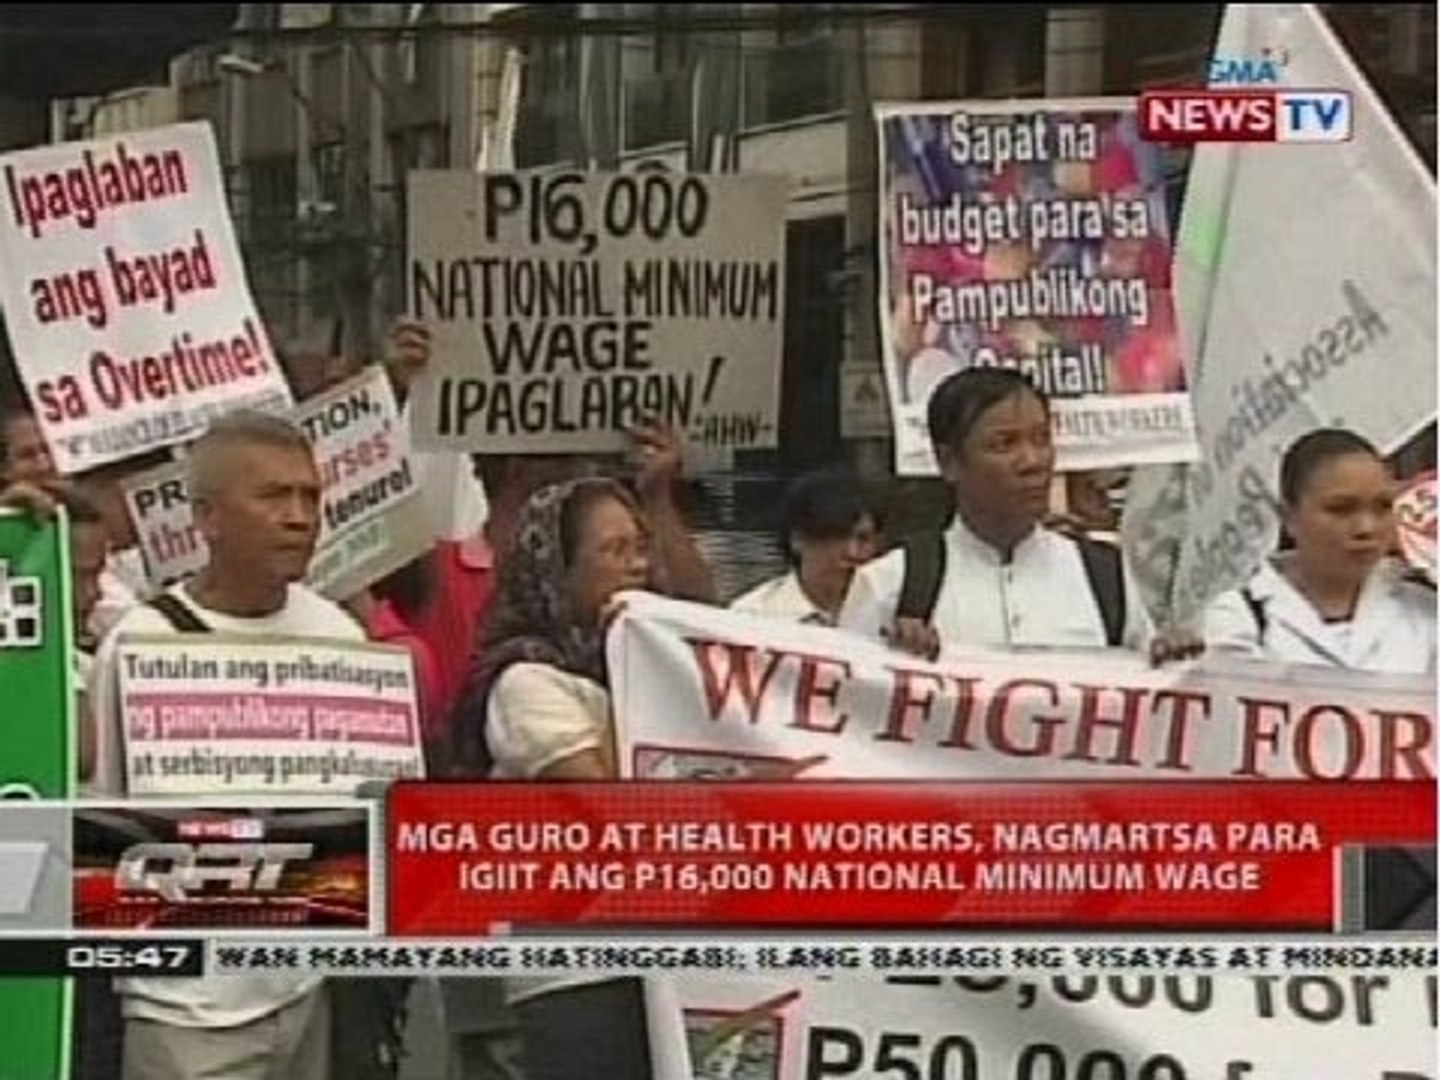 Mga guro at health workers, nagmartsa para igiit ang P16,000 national minimum wage